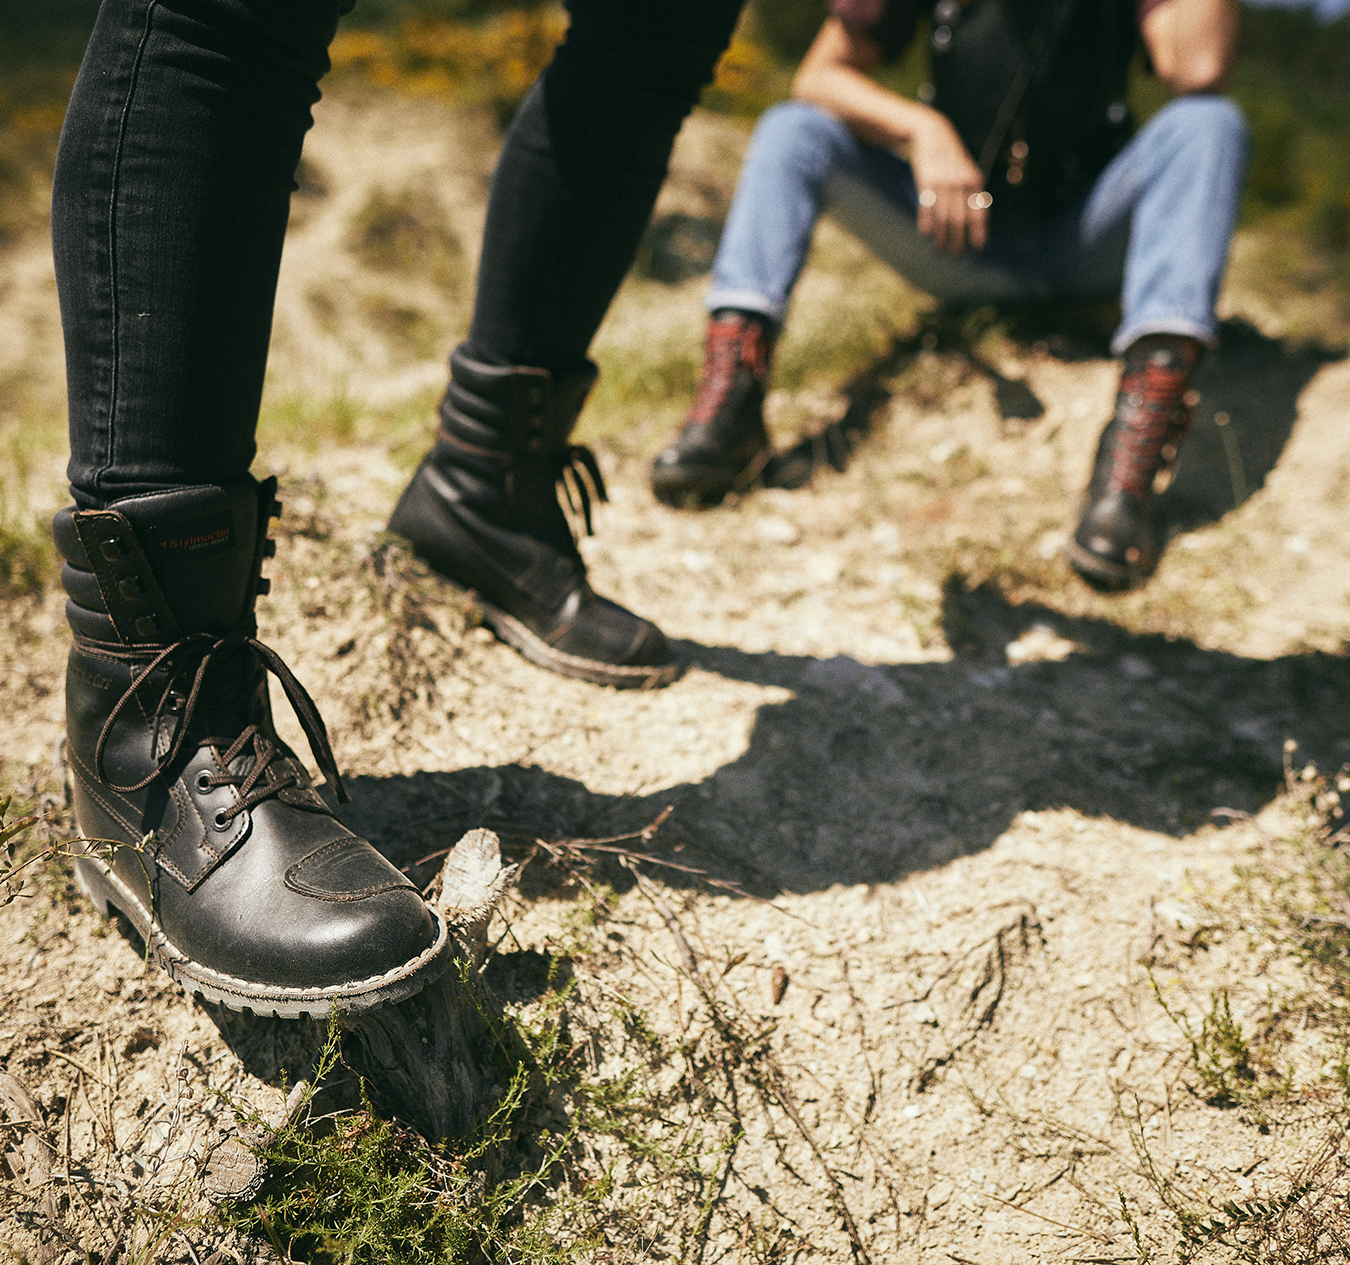 The best motorcycle footwears: shoes or boots